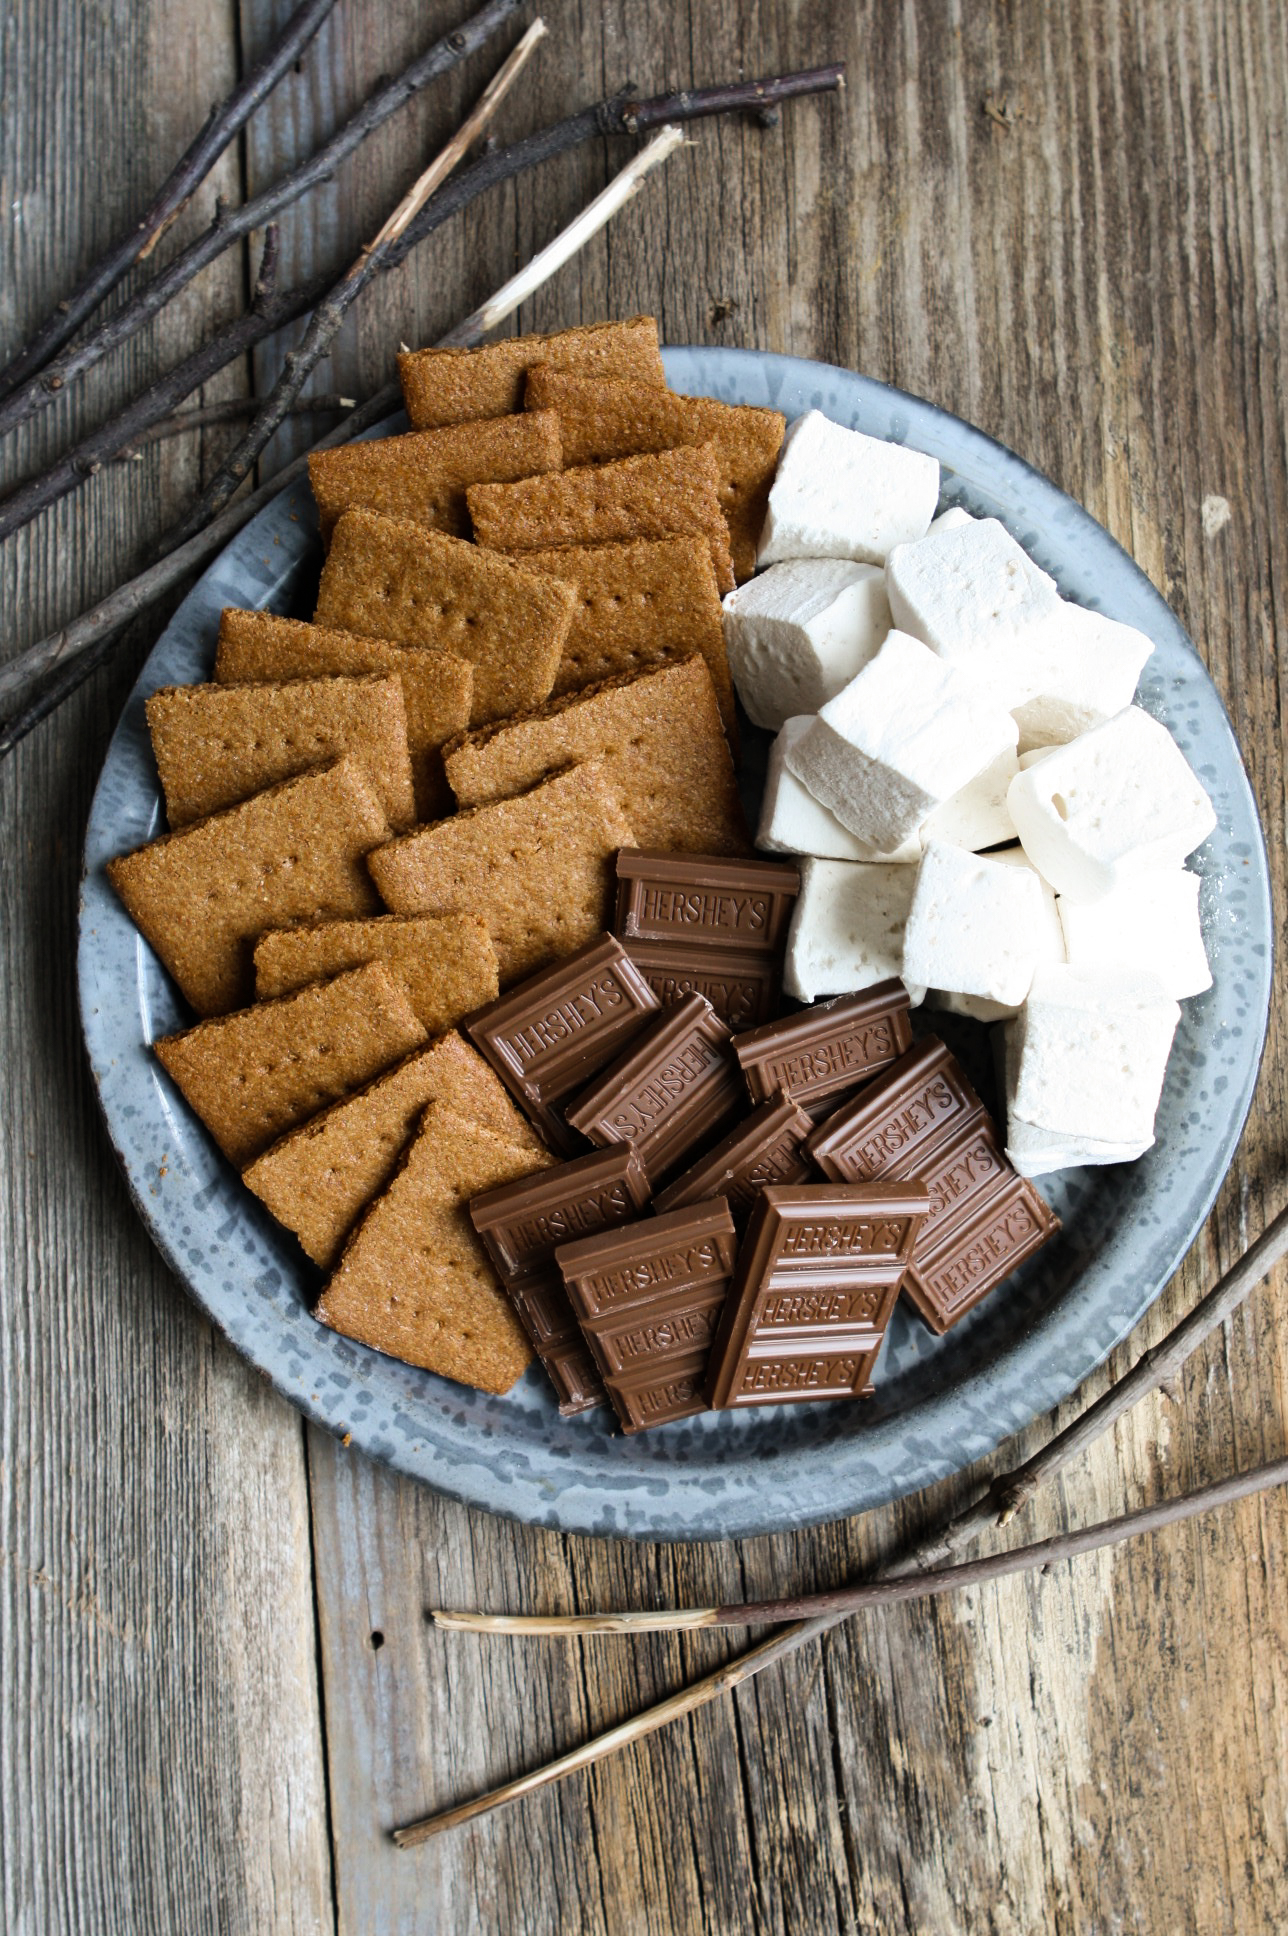 Homemade whole wheat graham crackers set on a metal camping plate with homemade marshmallows and chocolate bars.